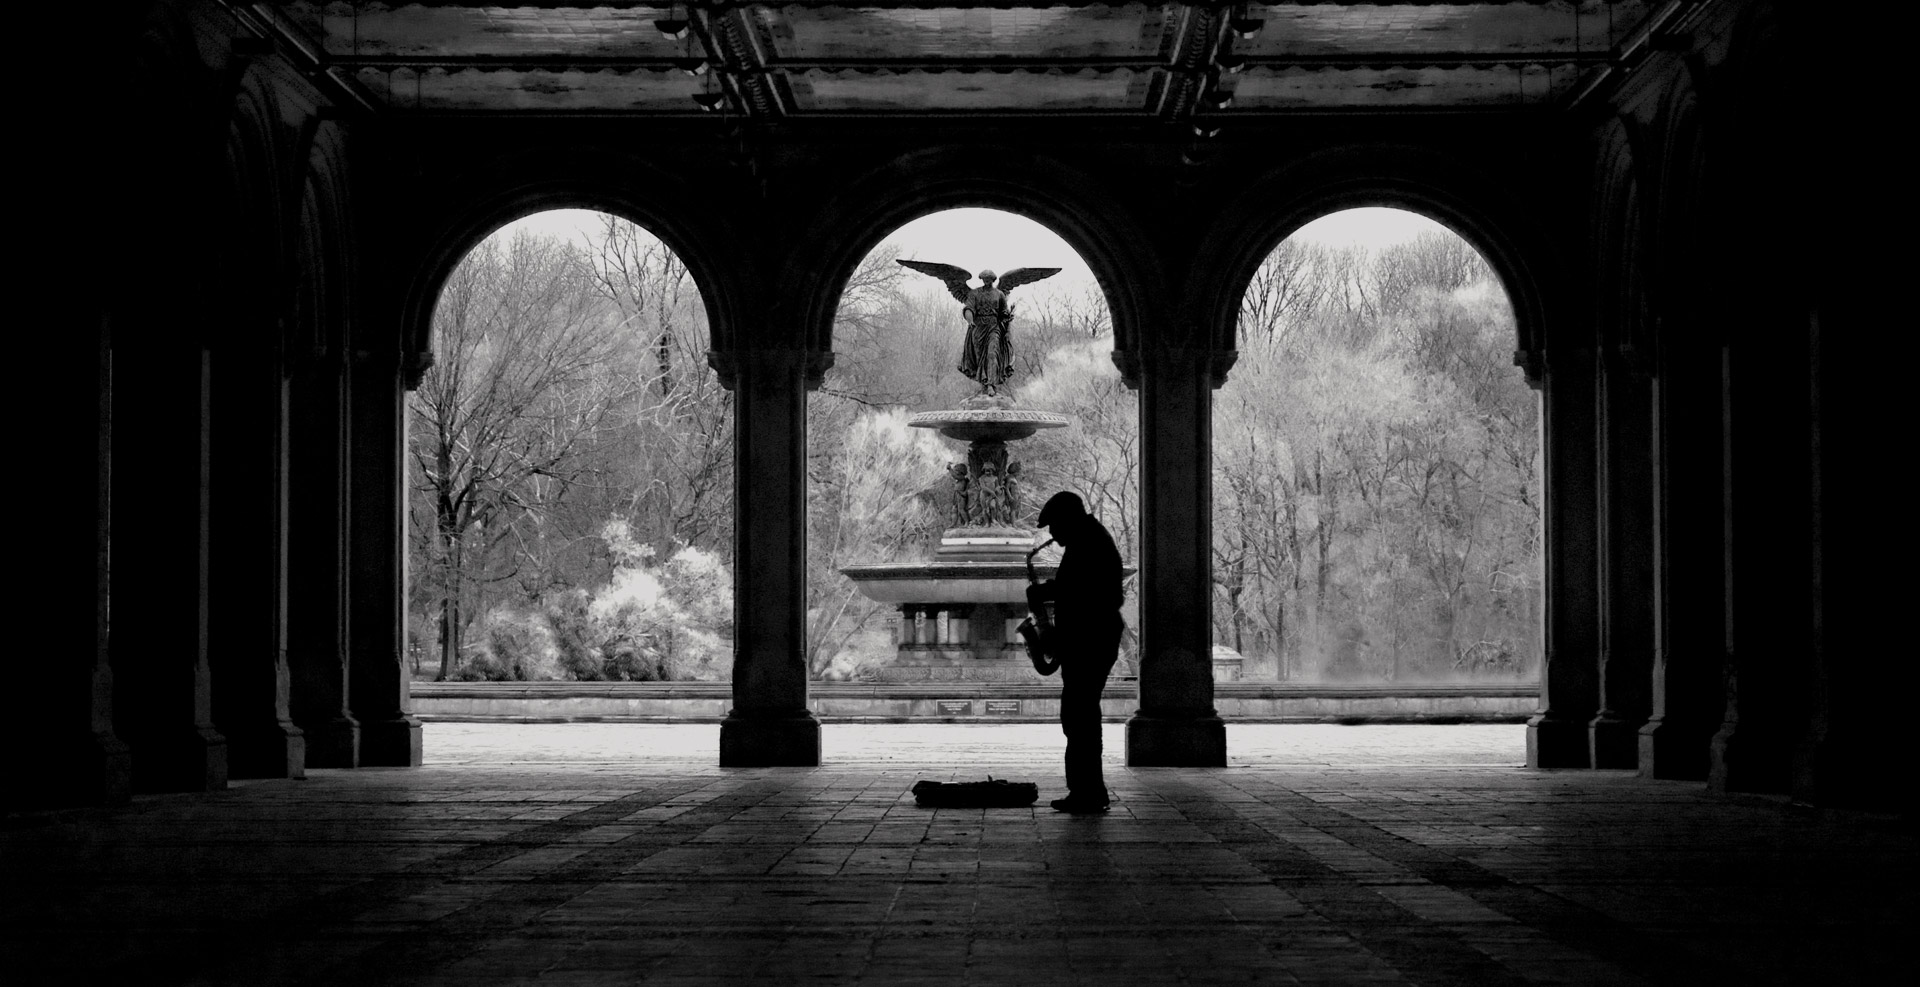 Man playing instrument in central park